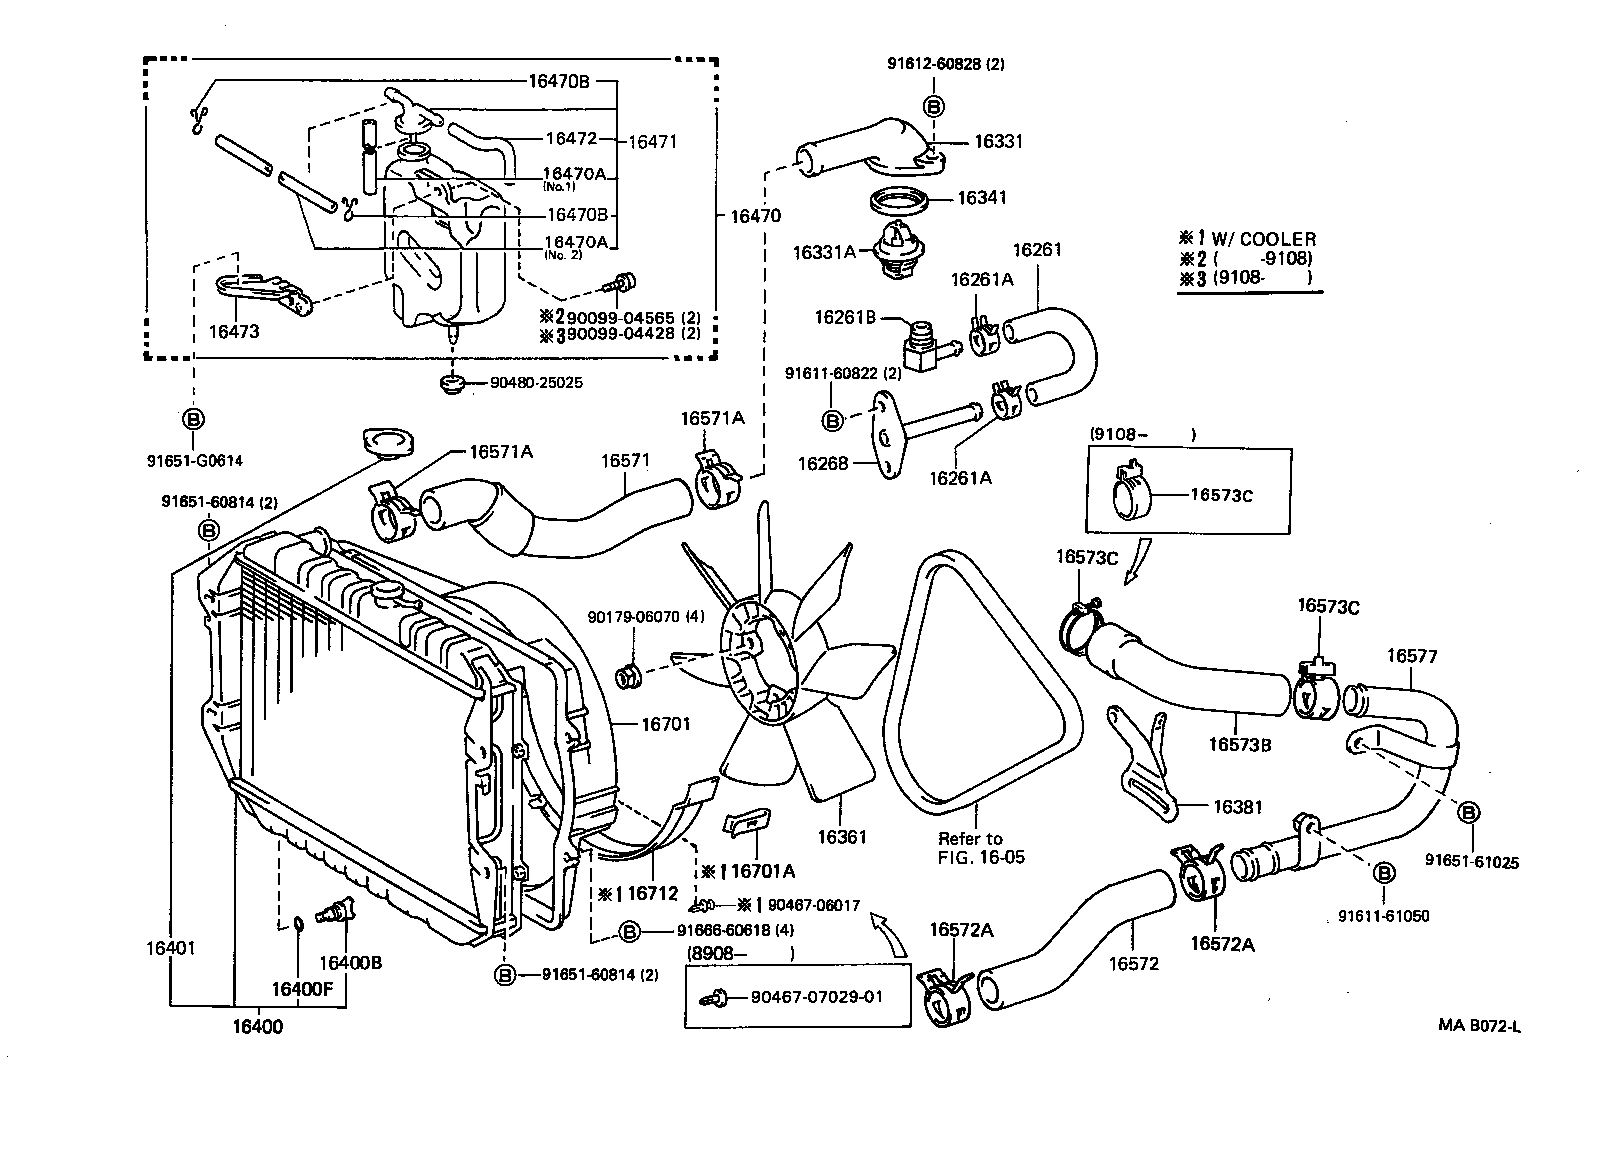 1992 Toyota Truck Parts Diagram • Wiring Diagram For Free